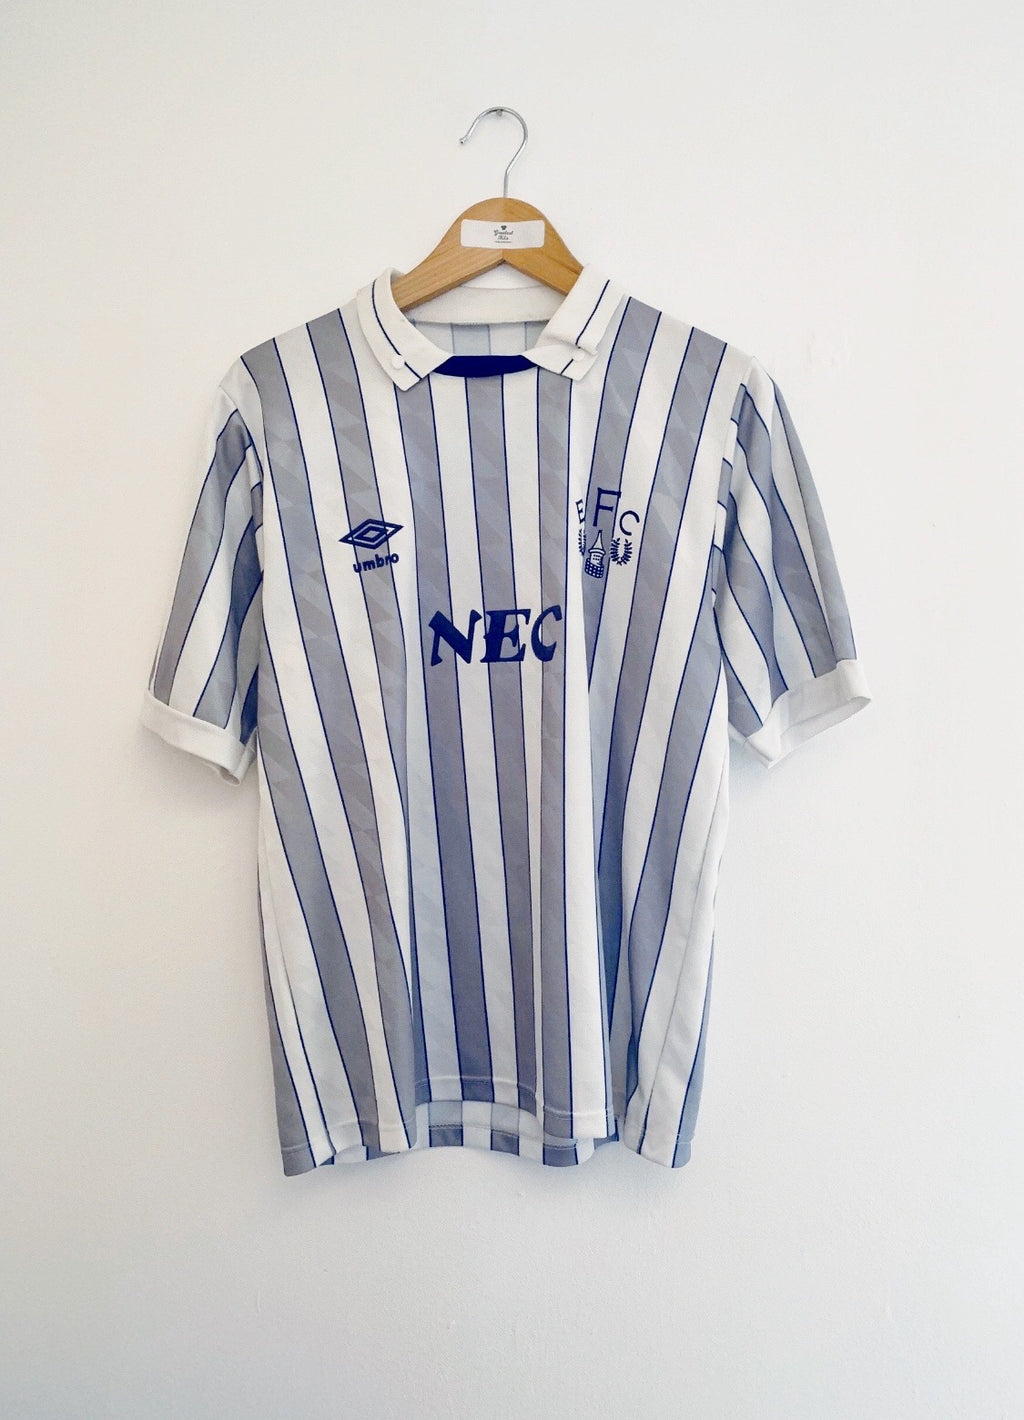 1988/90 Everton Away Shirt #9 *Signed* (M)